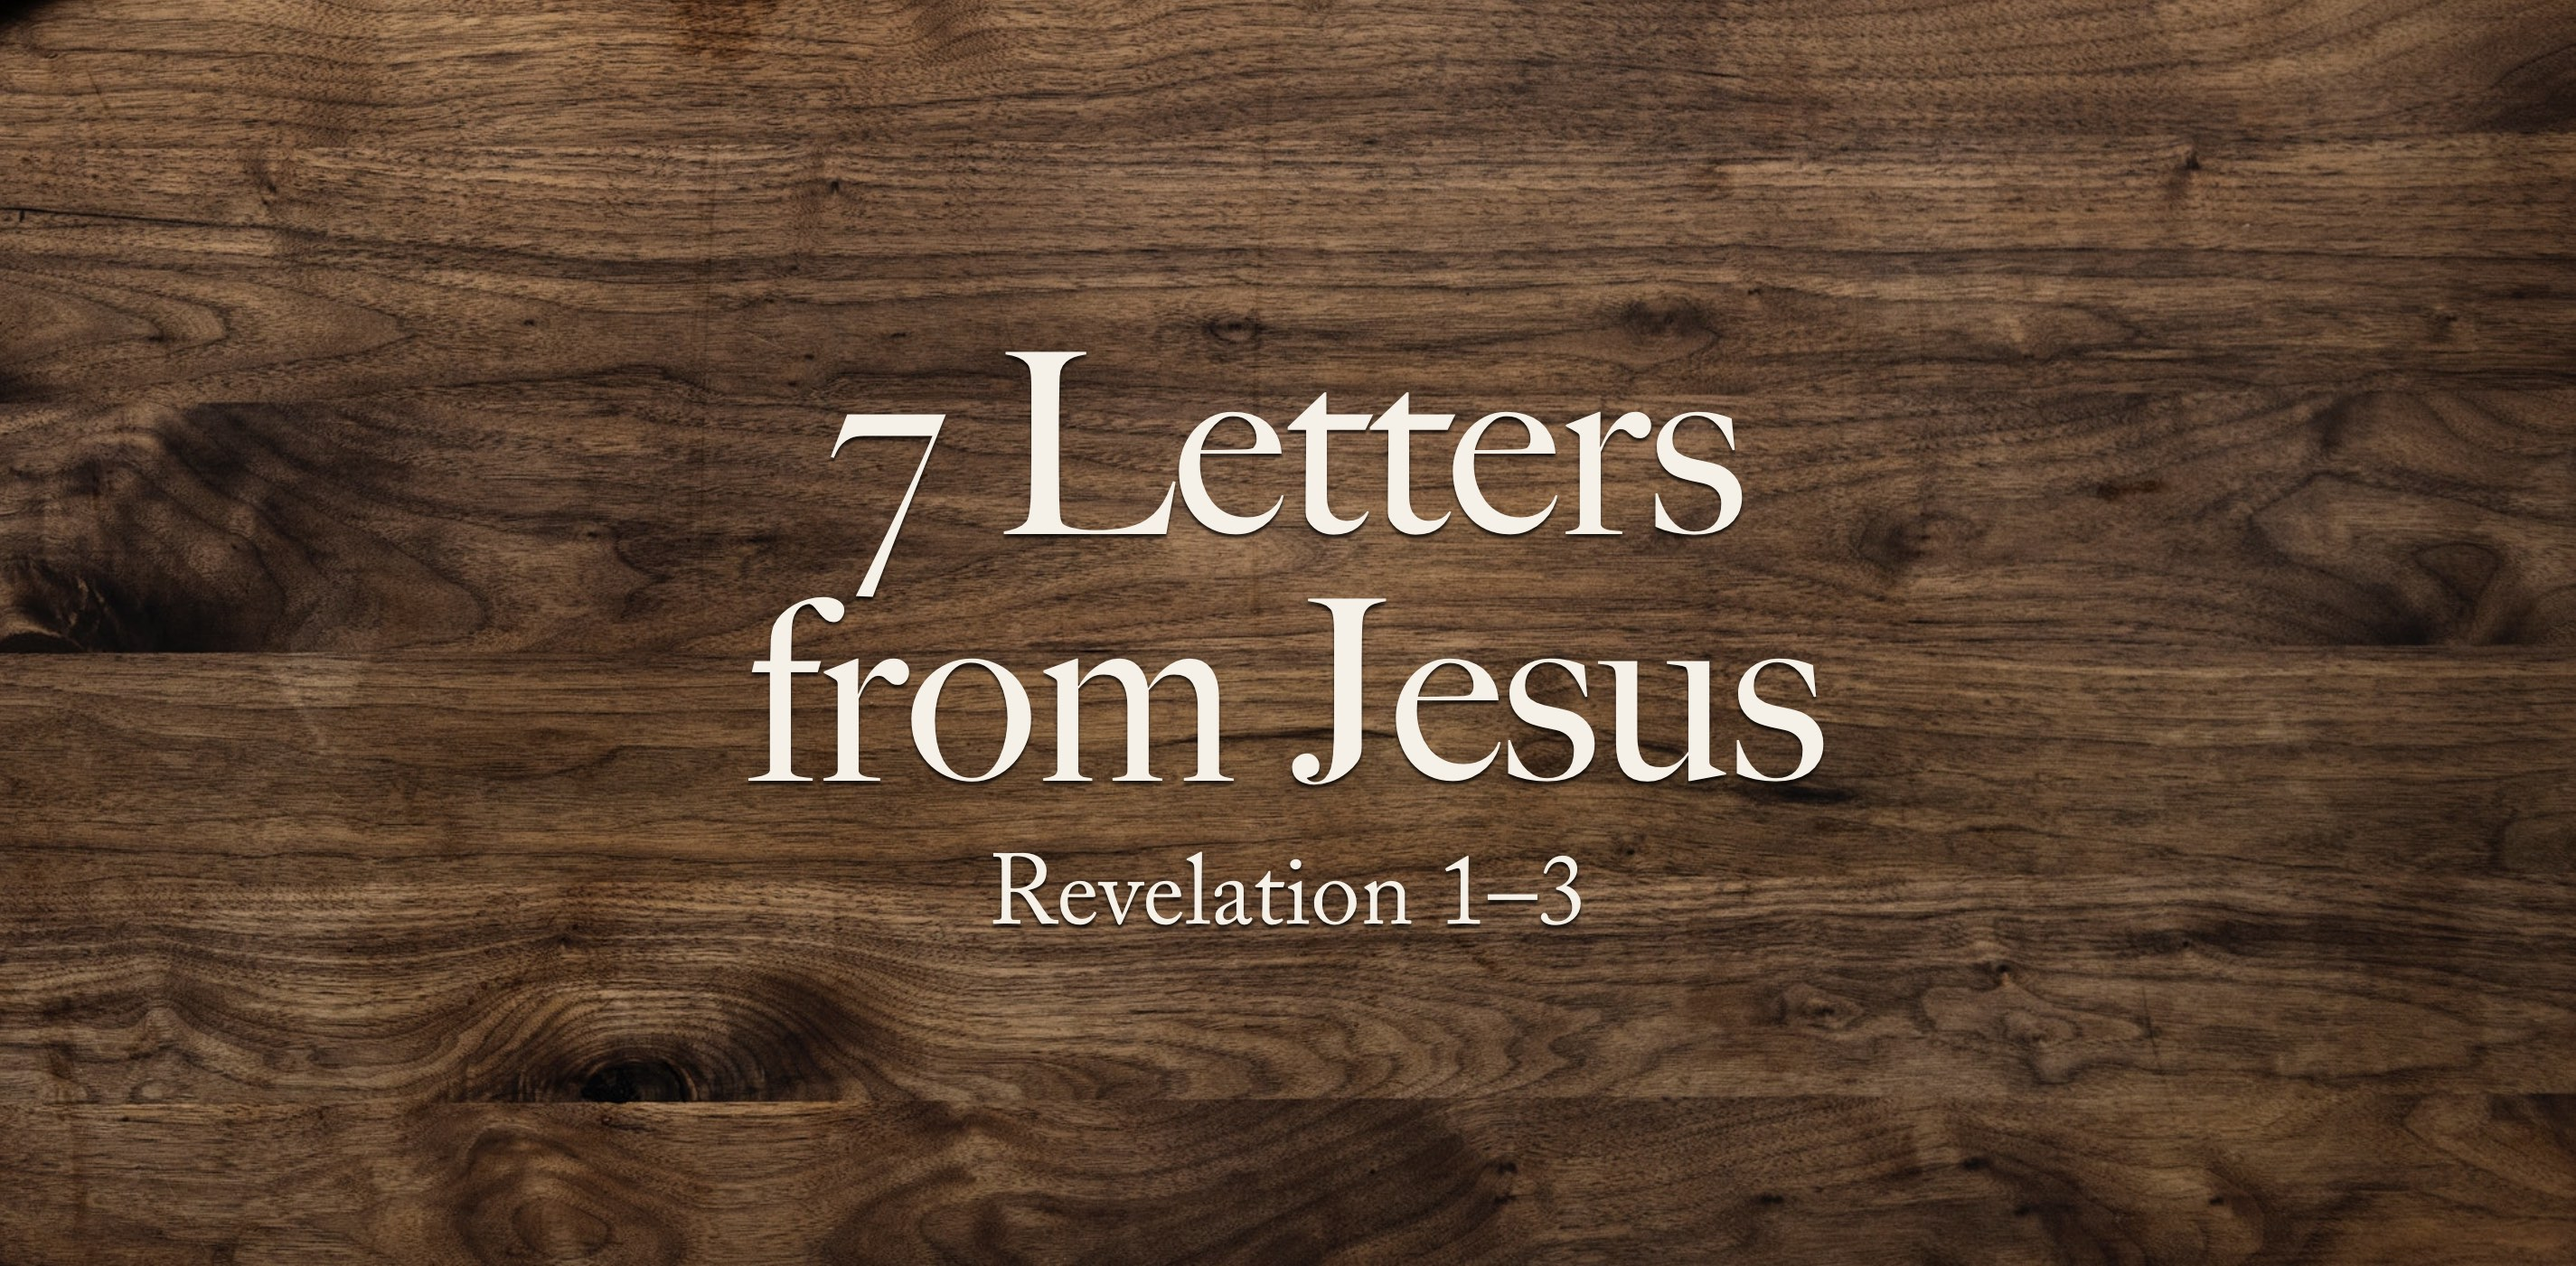 7 Letters from Jesus – Sermons